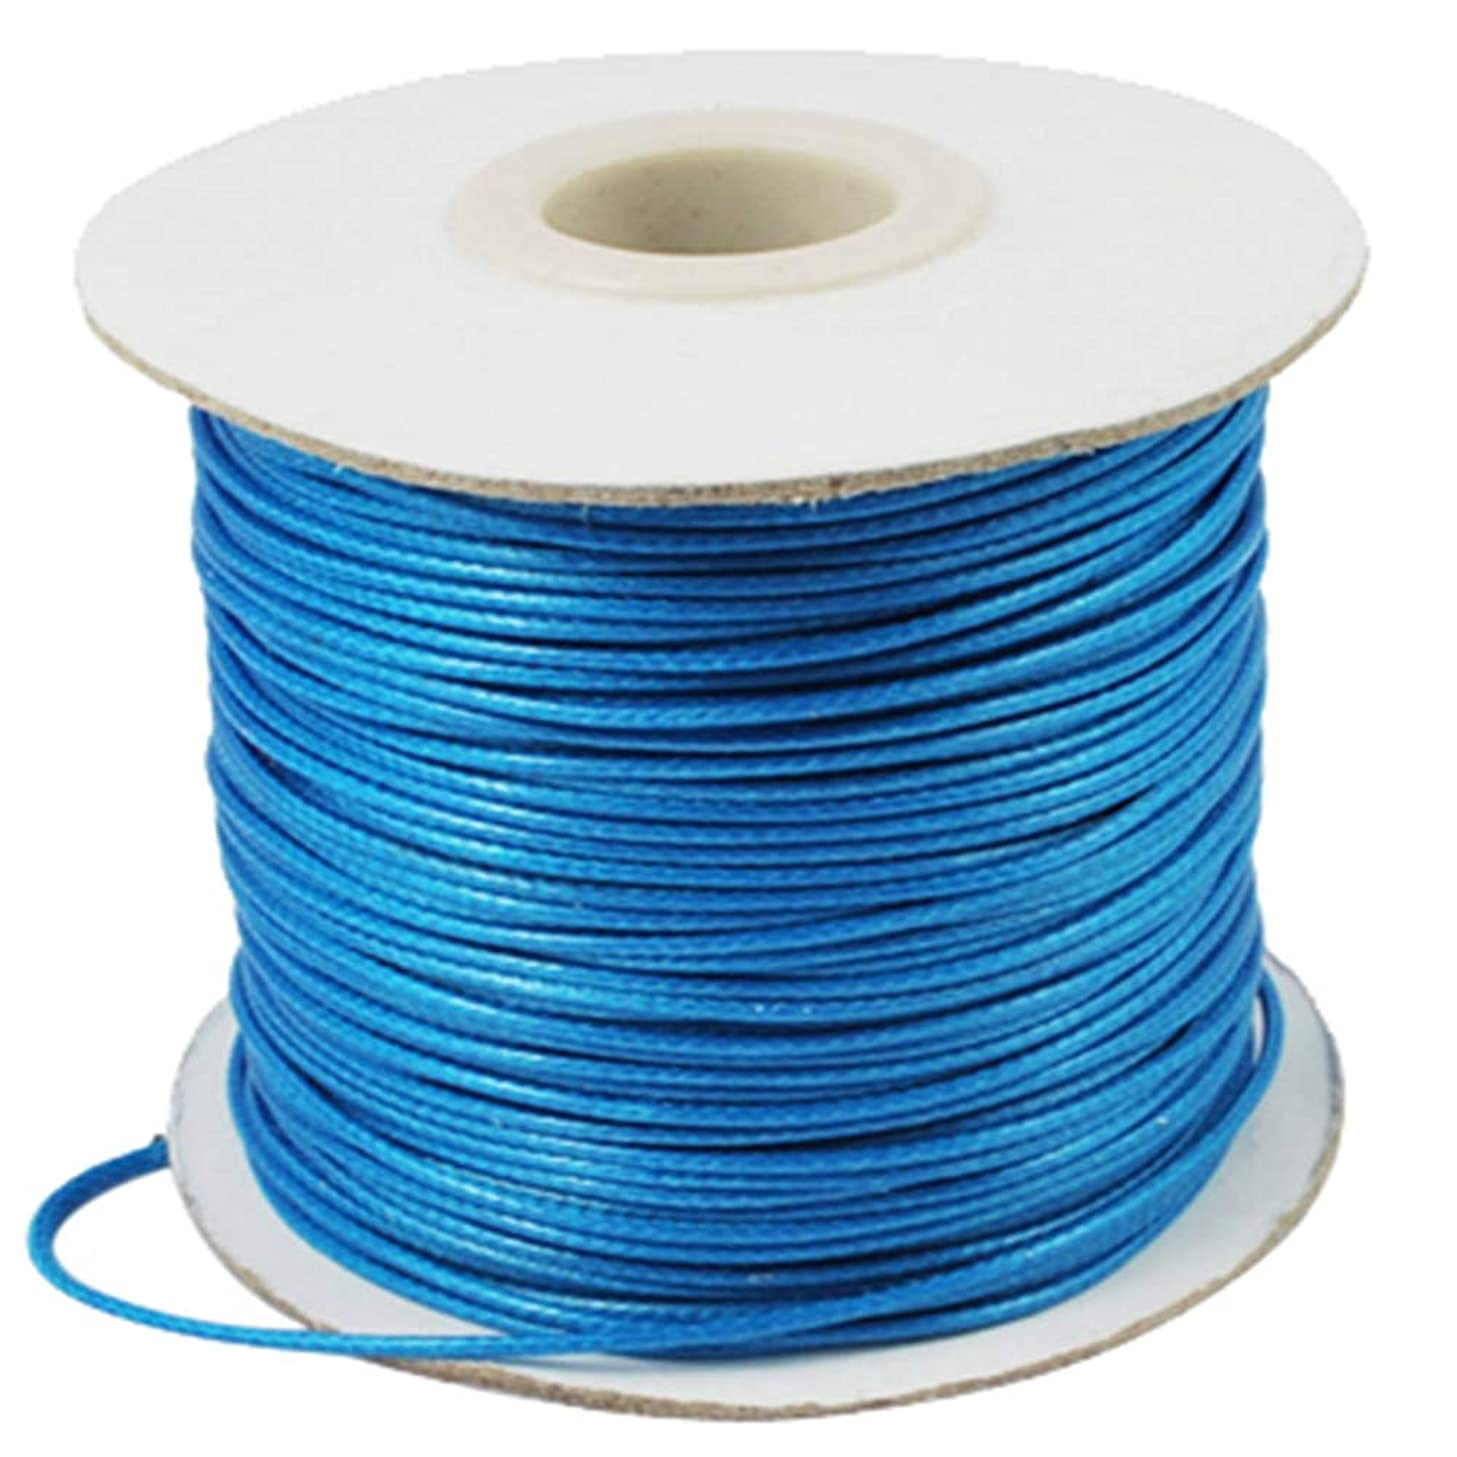 PH PandaHall 1 Roll 88 Yards 1mm Waxed Polyester Cord Korean Waxed Cord Beading String Craft Bead Cord for Jewellery Bracelets Craft Making (Deep SkyBlue)